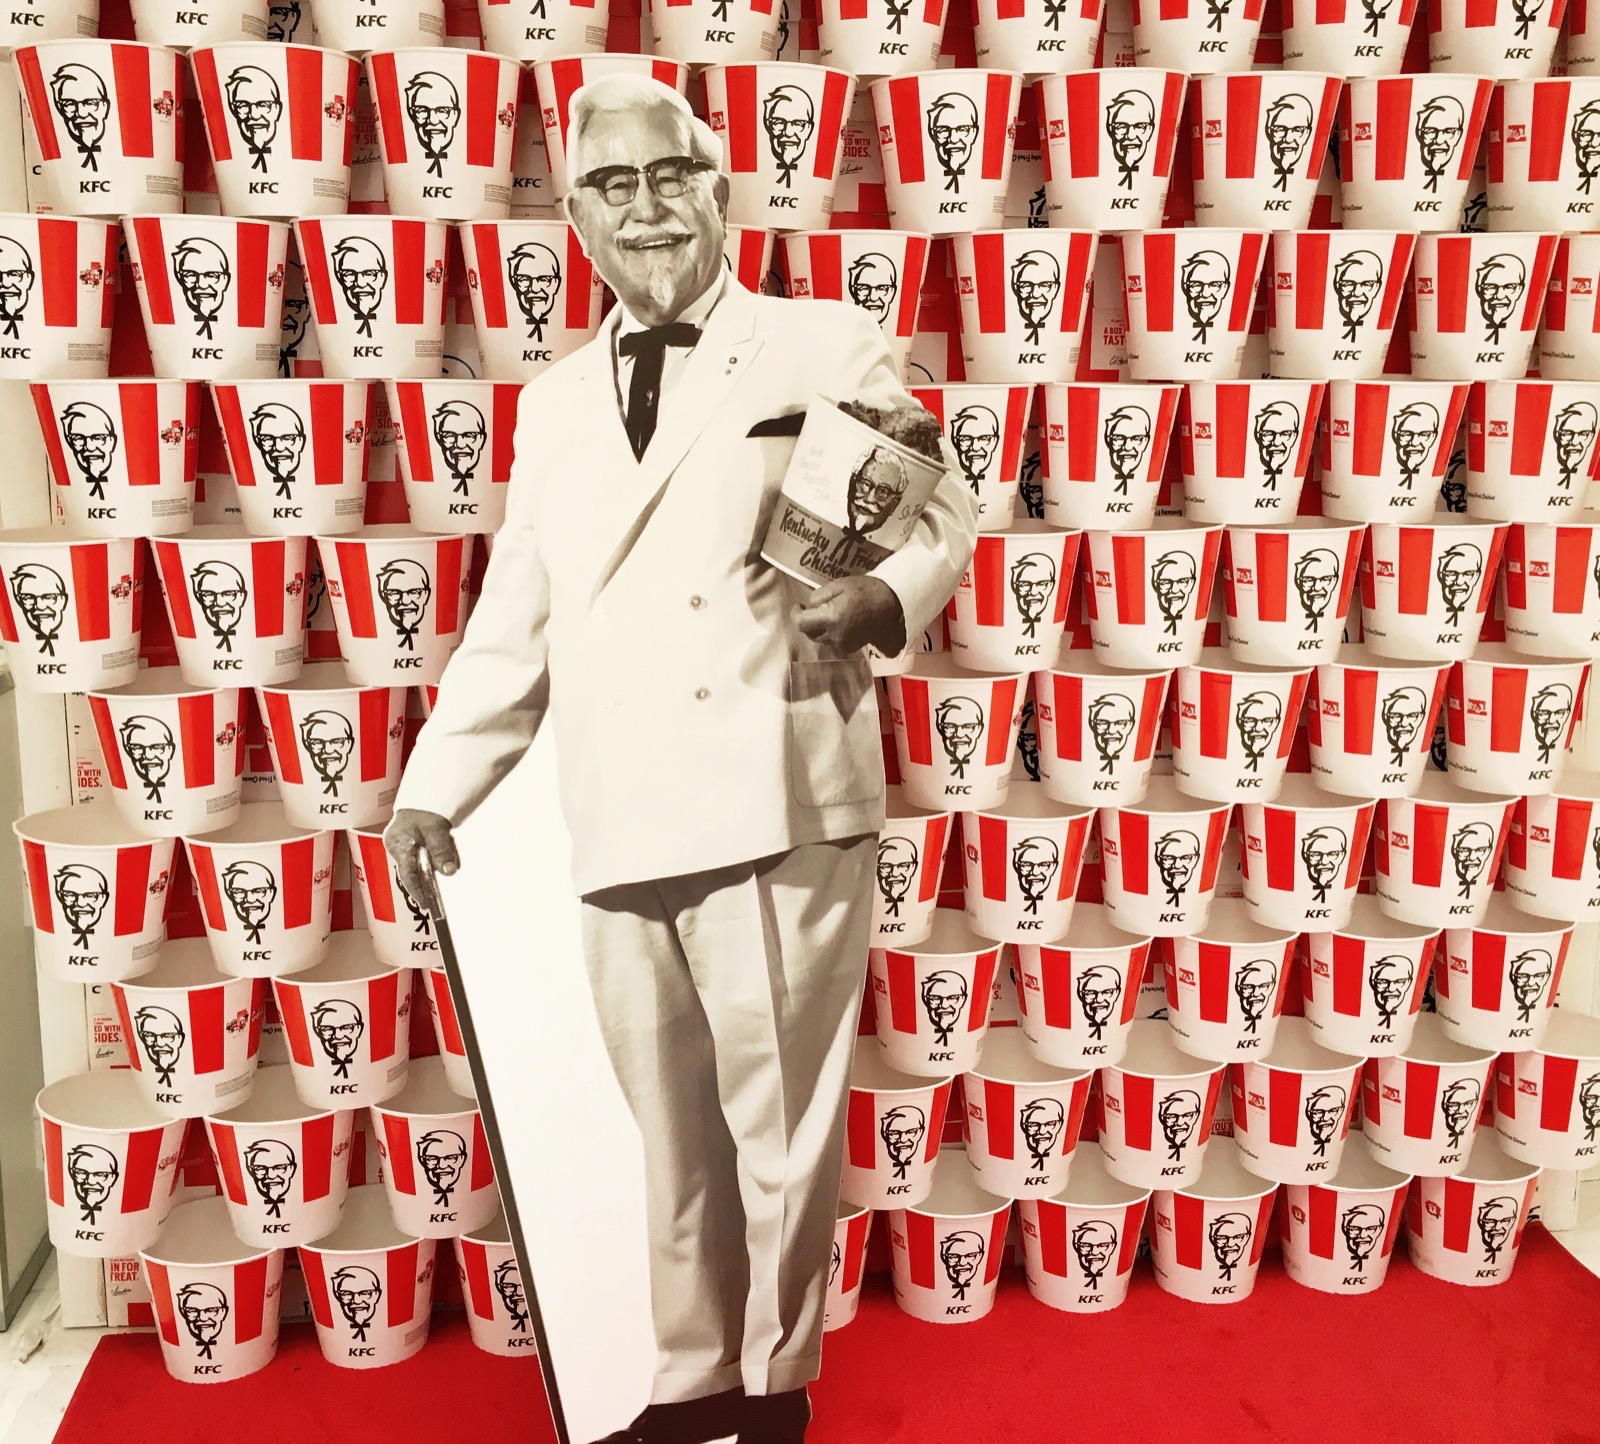 A cutout of Colonel Sanders at KFC's press conference.